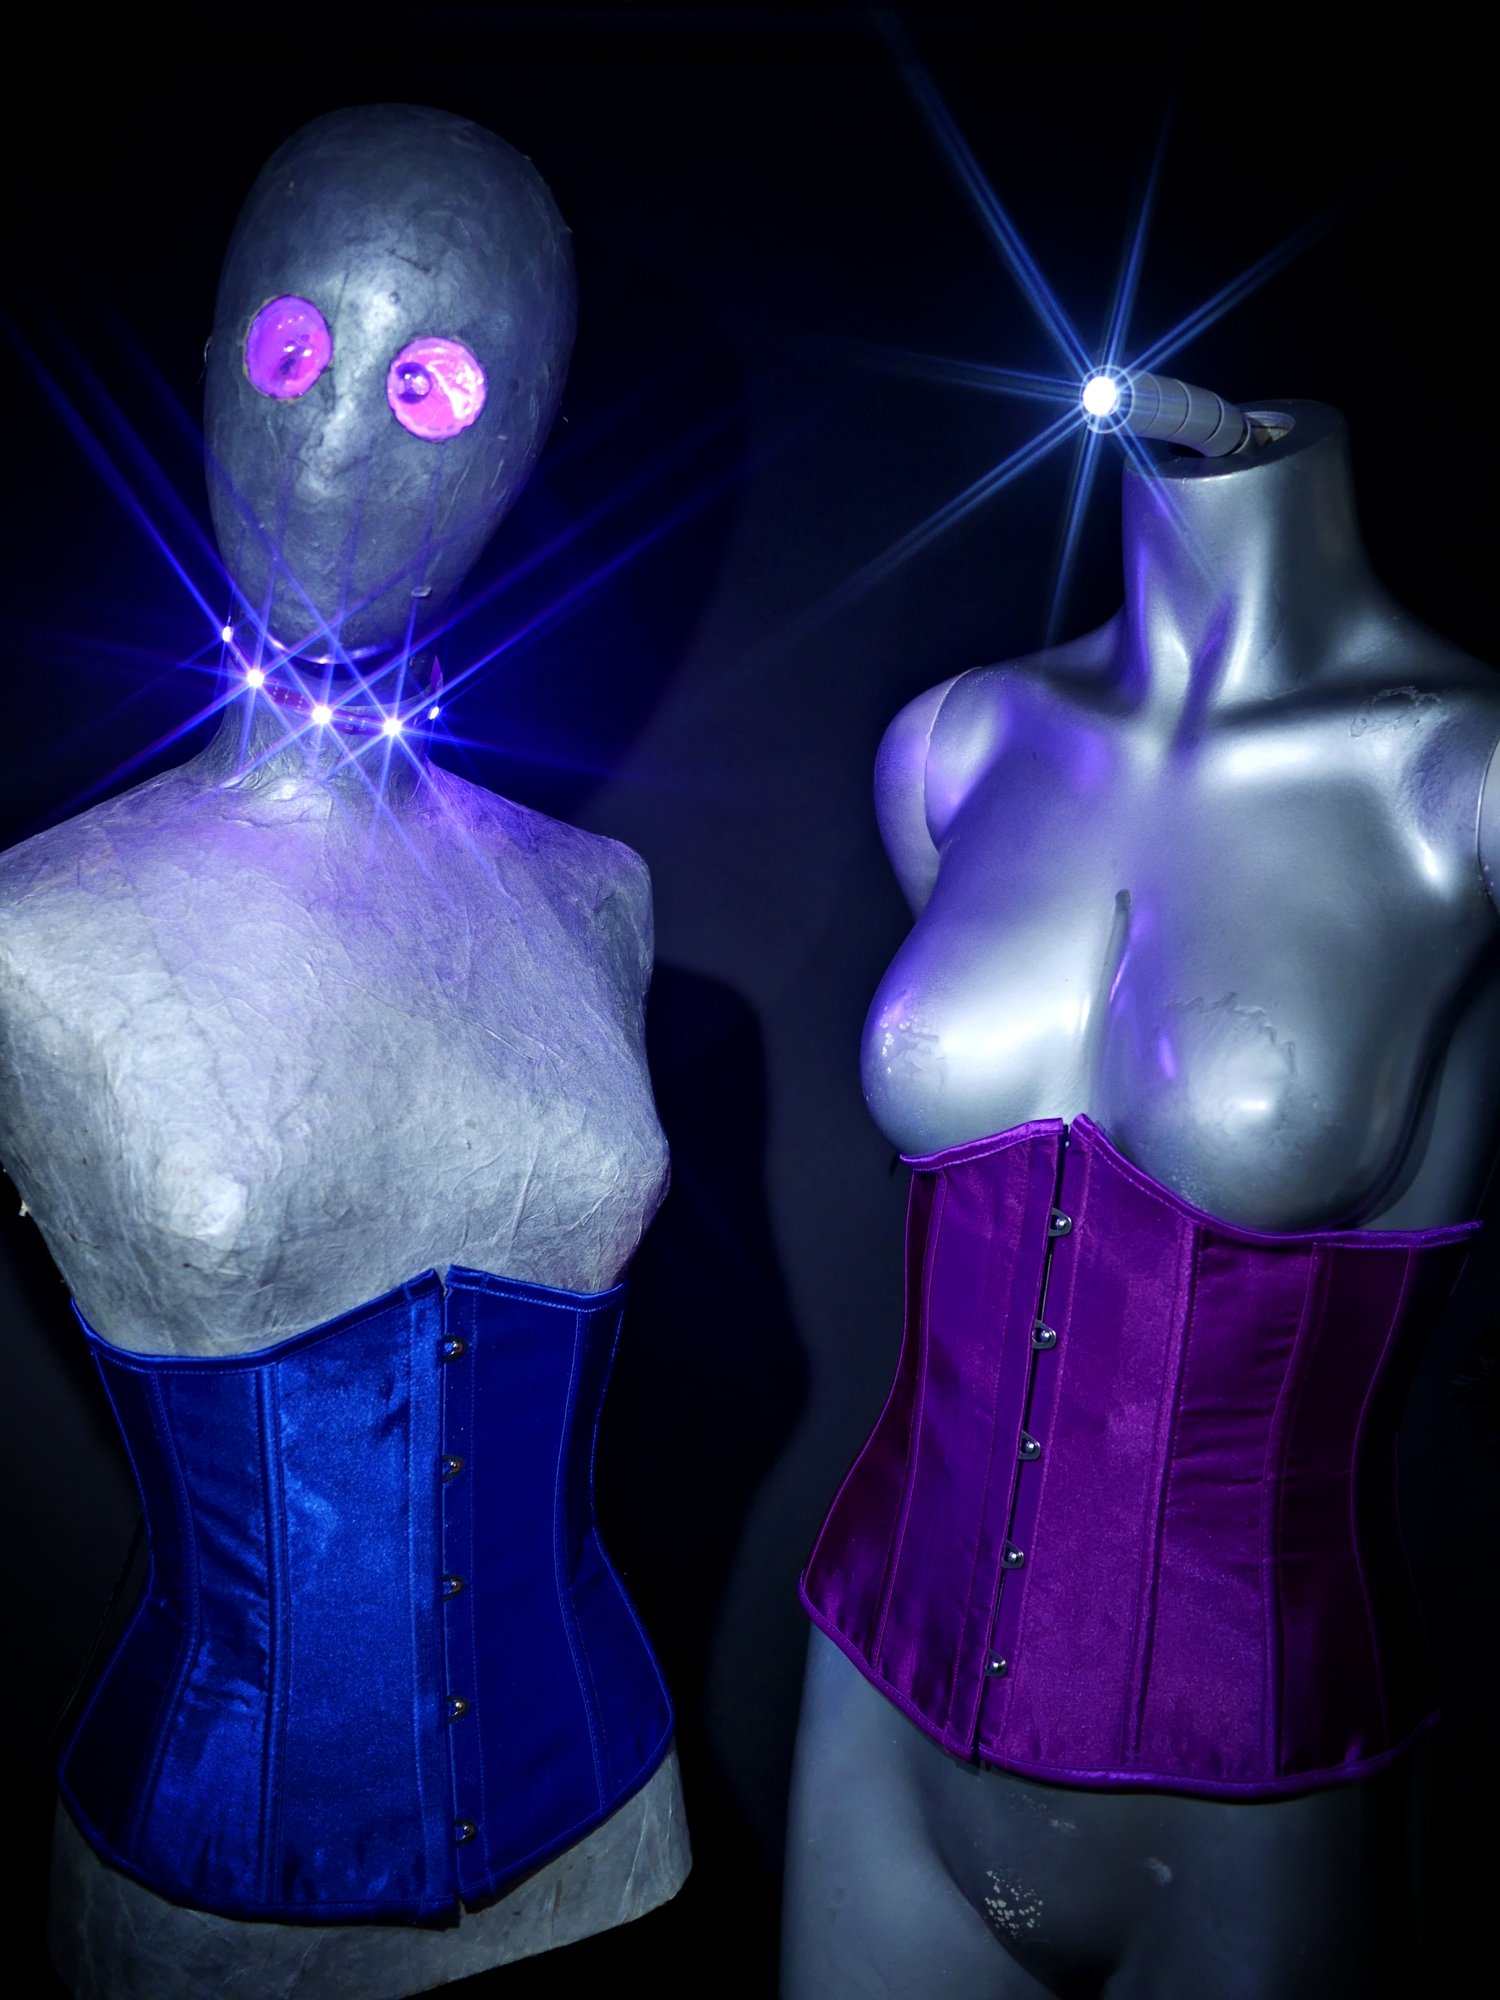 """LED lighting demo. 20161105-Manequins - better known as """"The Aliens"""""""